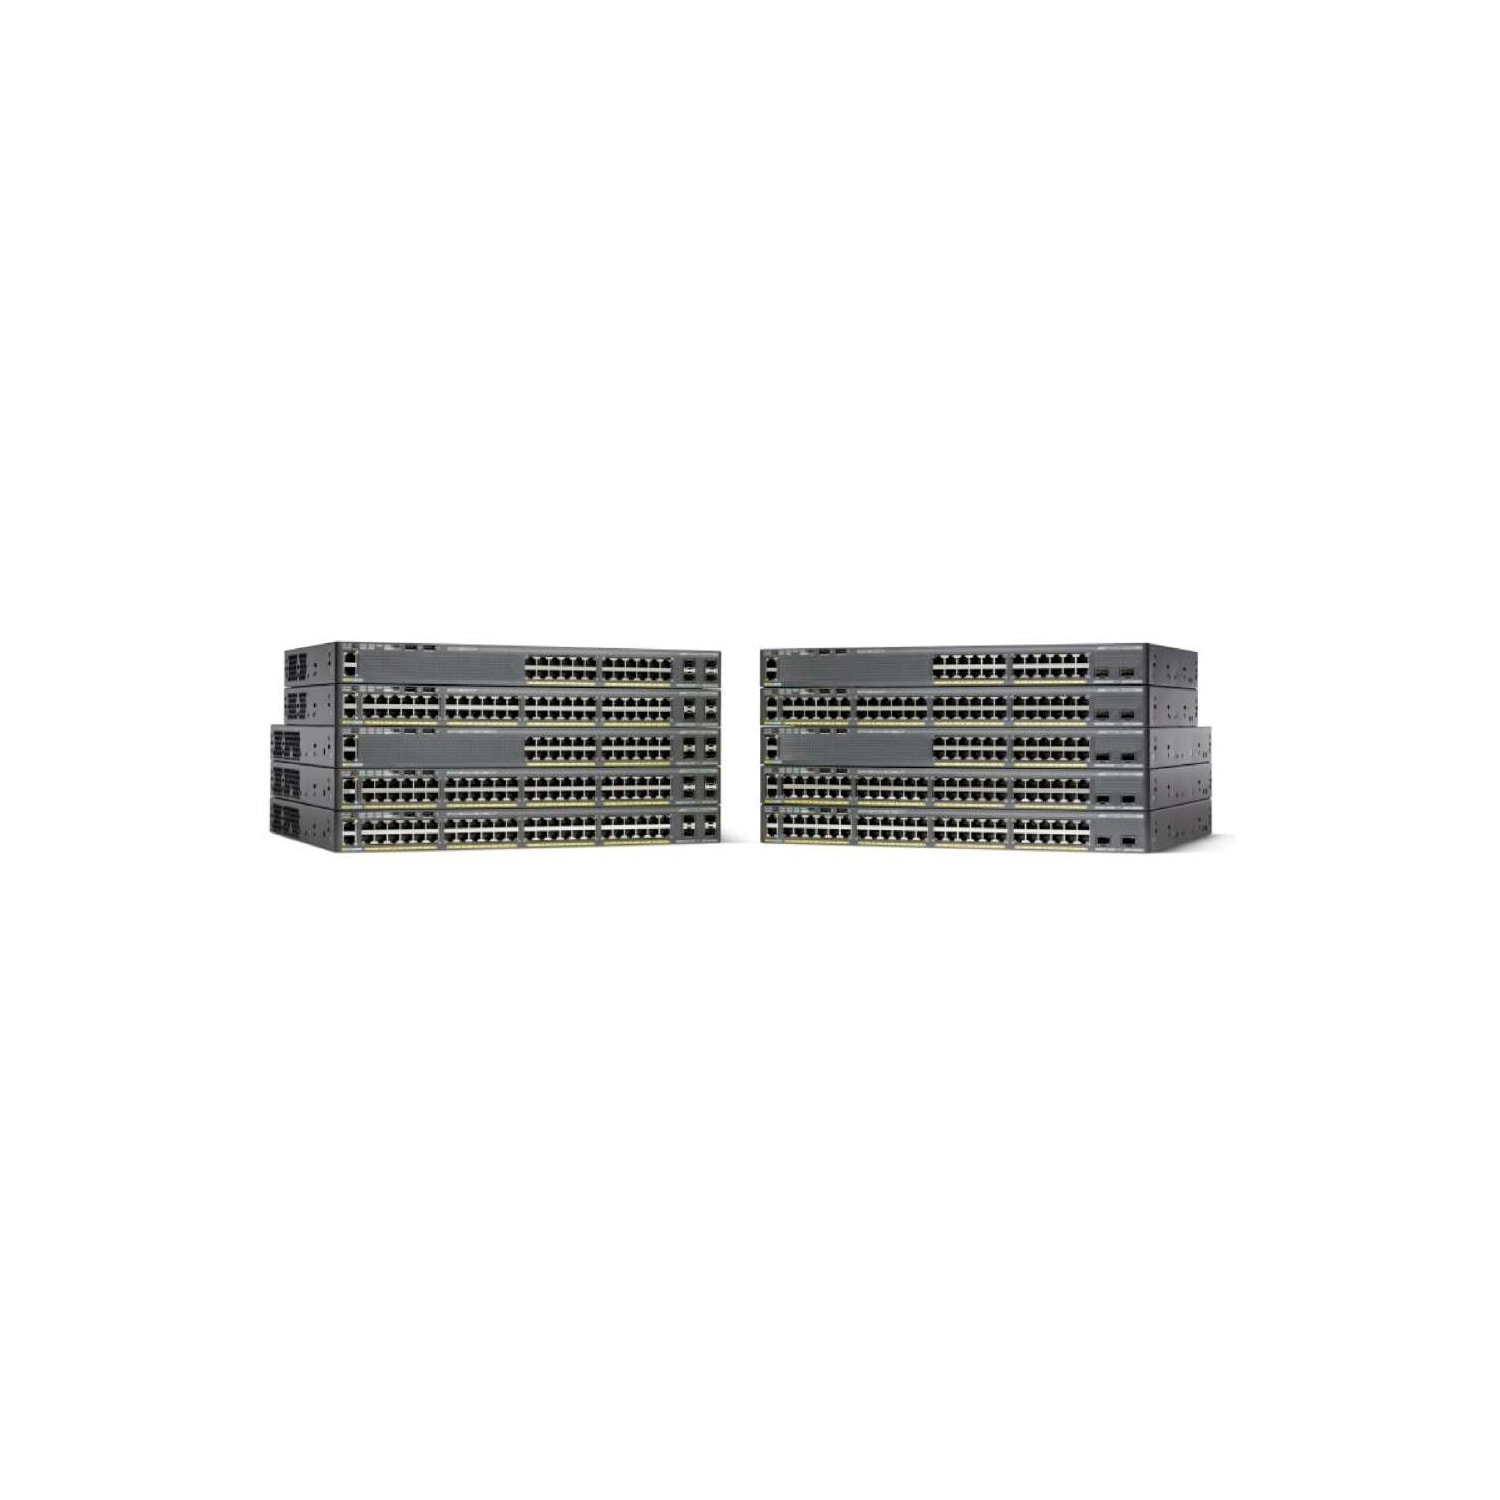 Buy Cisco Catalyst 2960x 48lpd L 48 Ports Manageable Ethernet Switch 2960 S With Lan Base Vs Ip